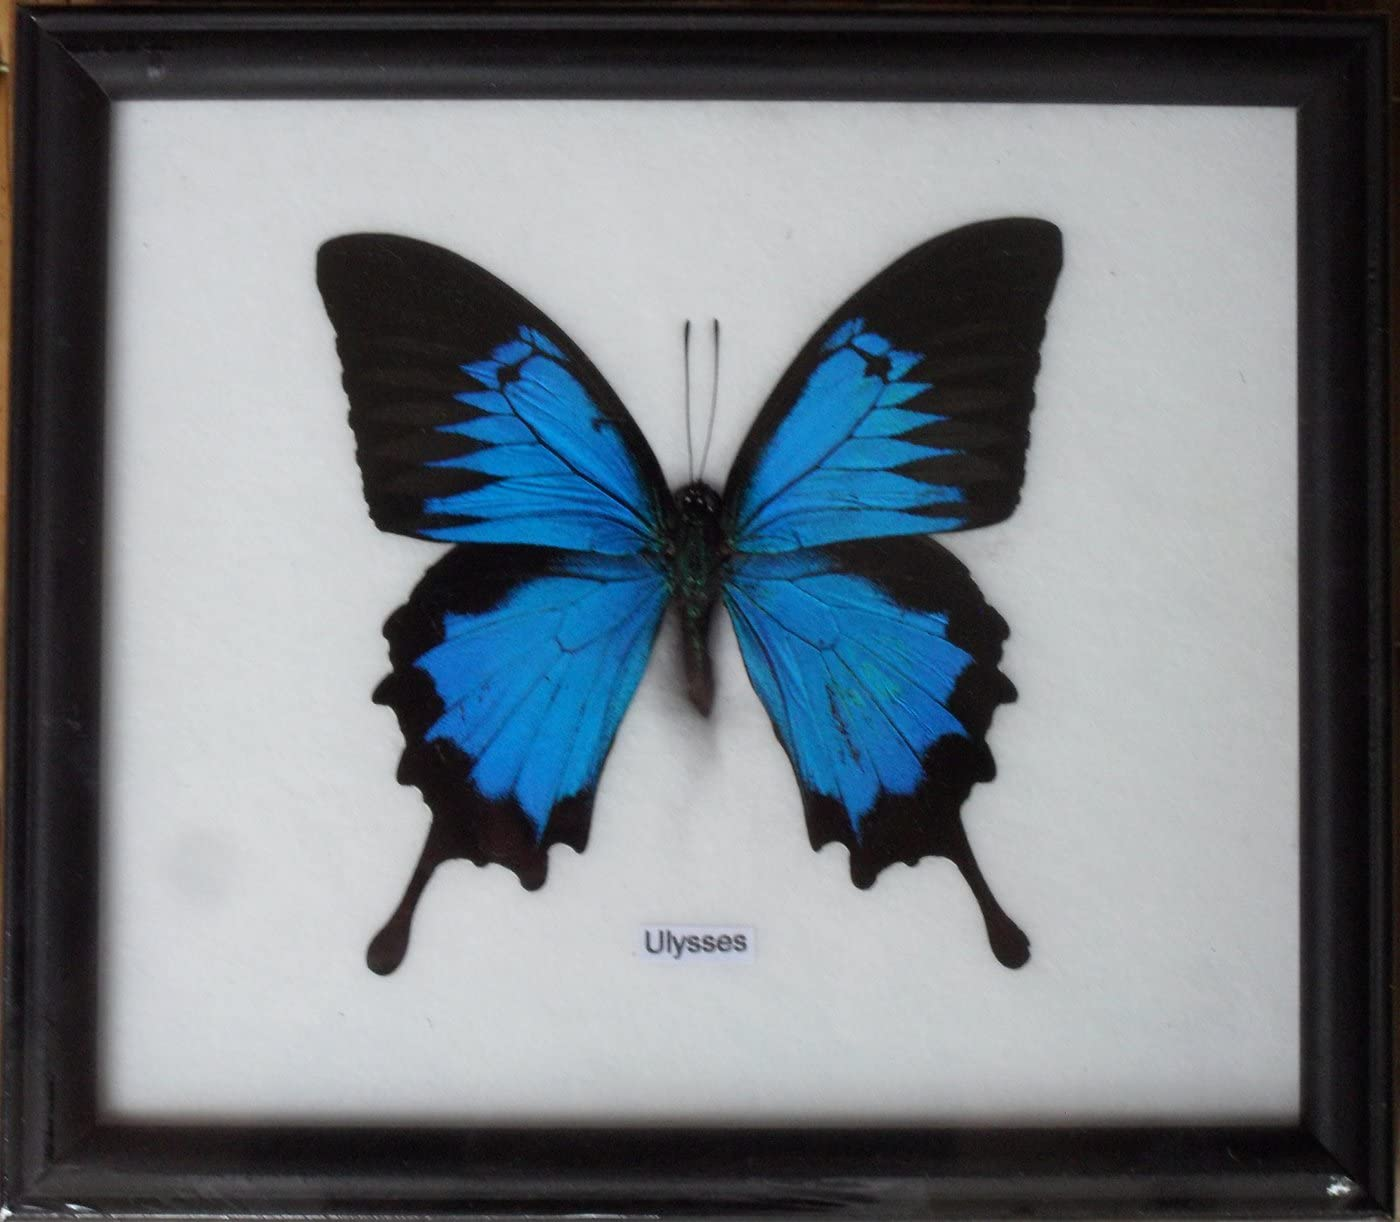 Insectfarm Real Single Papilio ULYSSES Butterfly Taxidermy in Frame